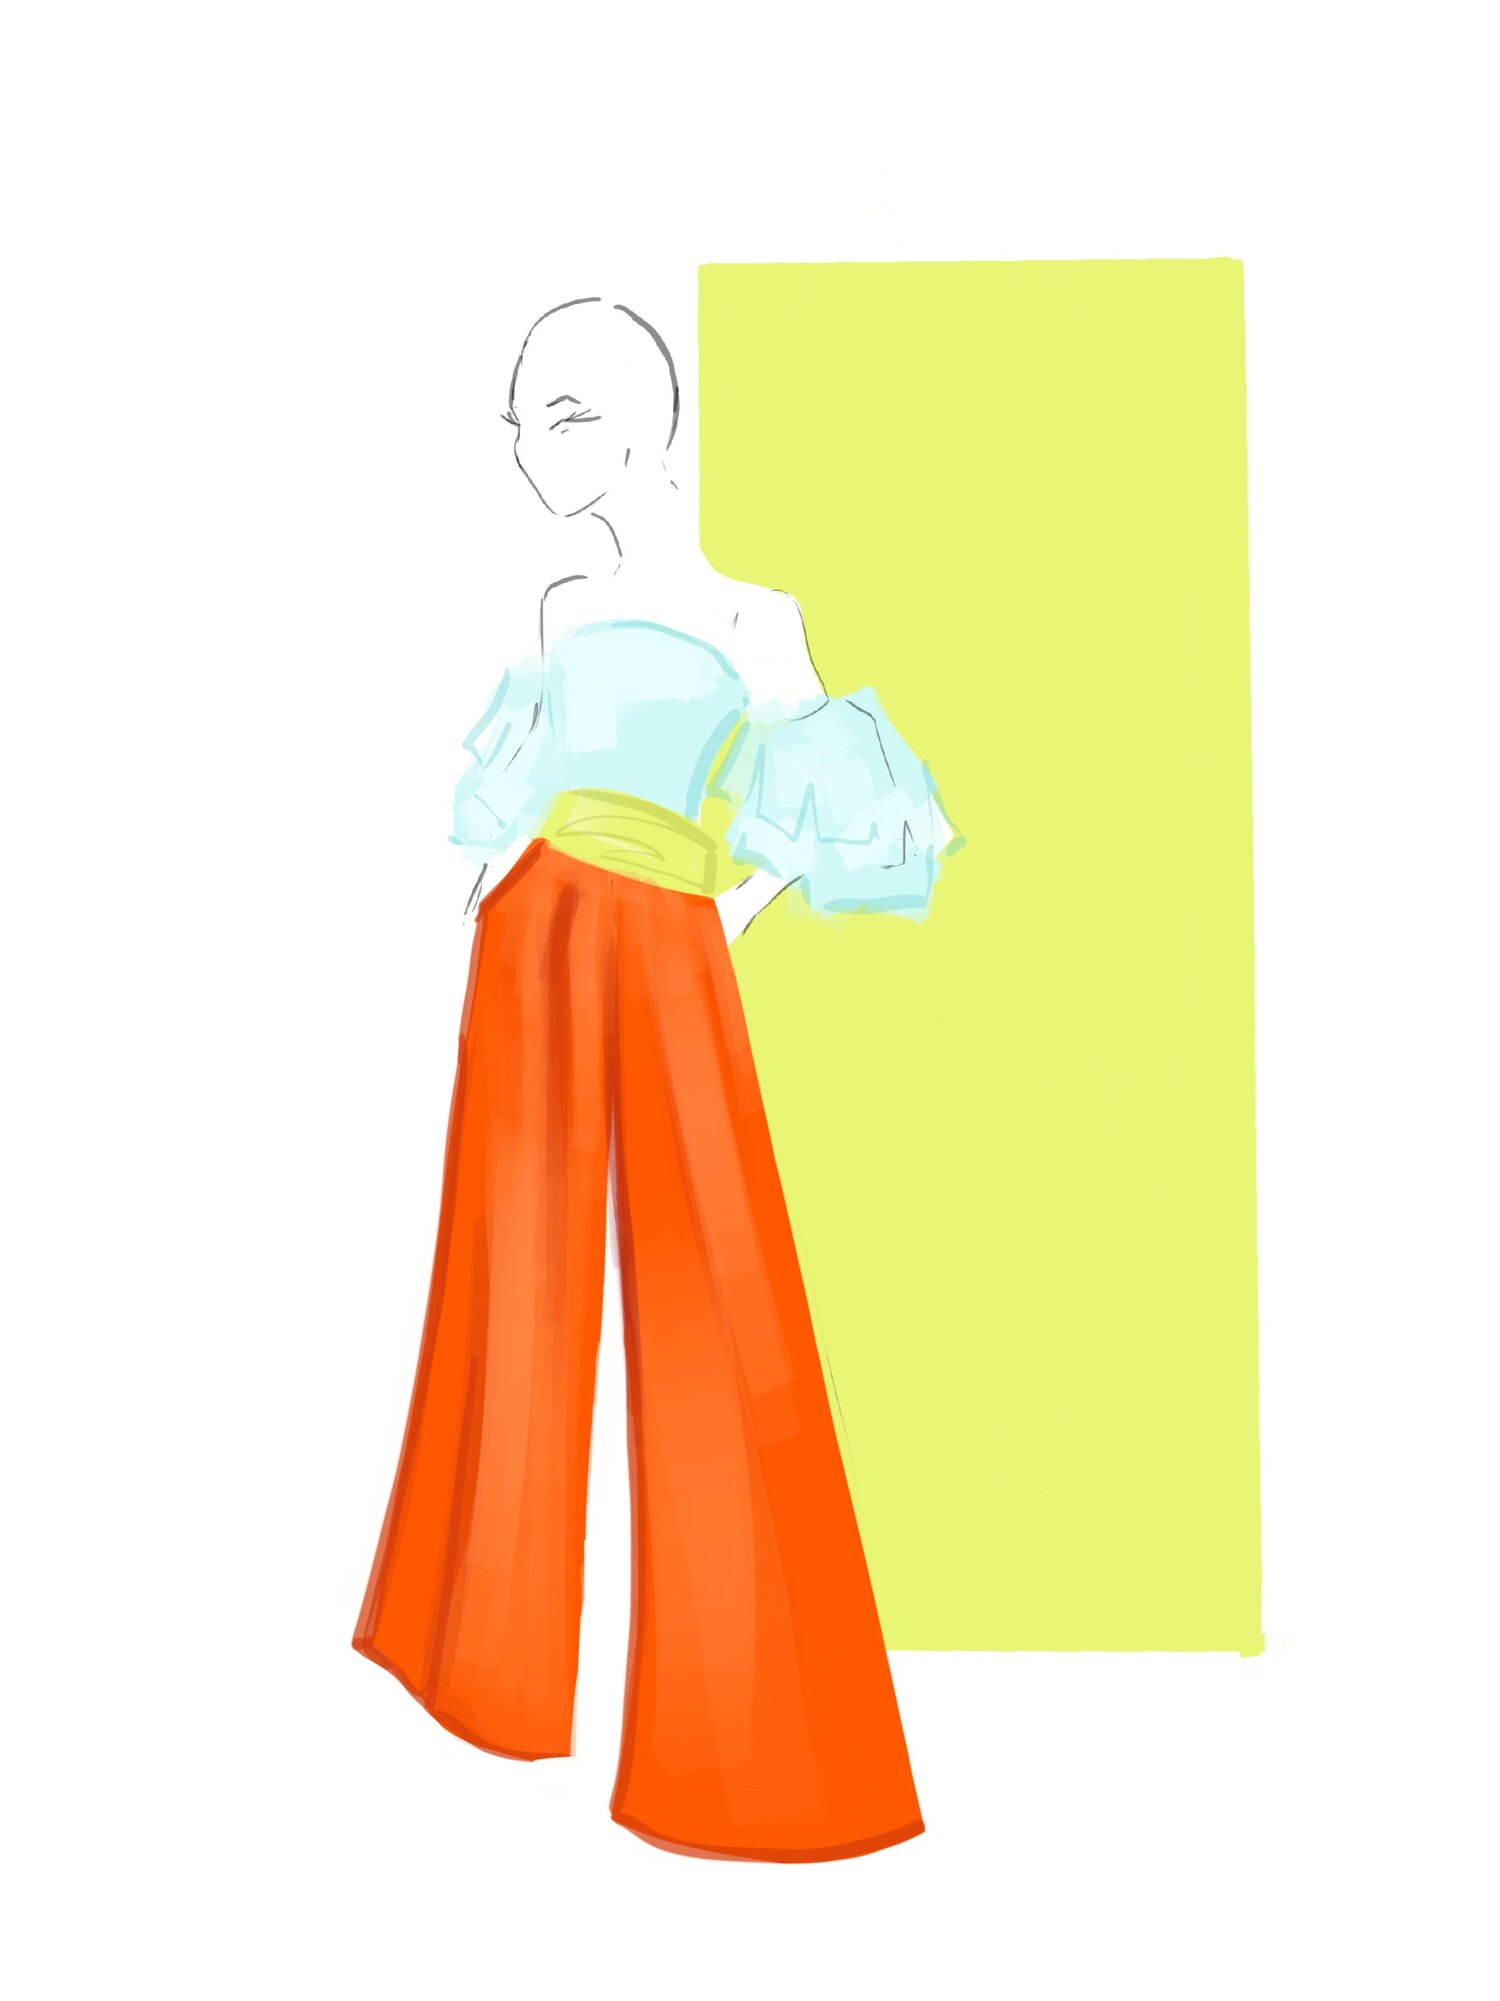 alice-and-olivia-02-nyfw-fashion-illustration-by-stephanie-anne.jpg